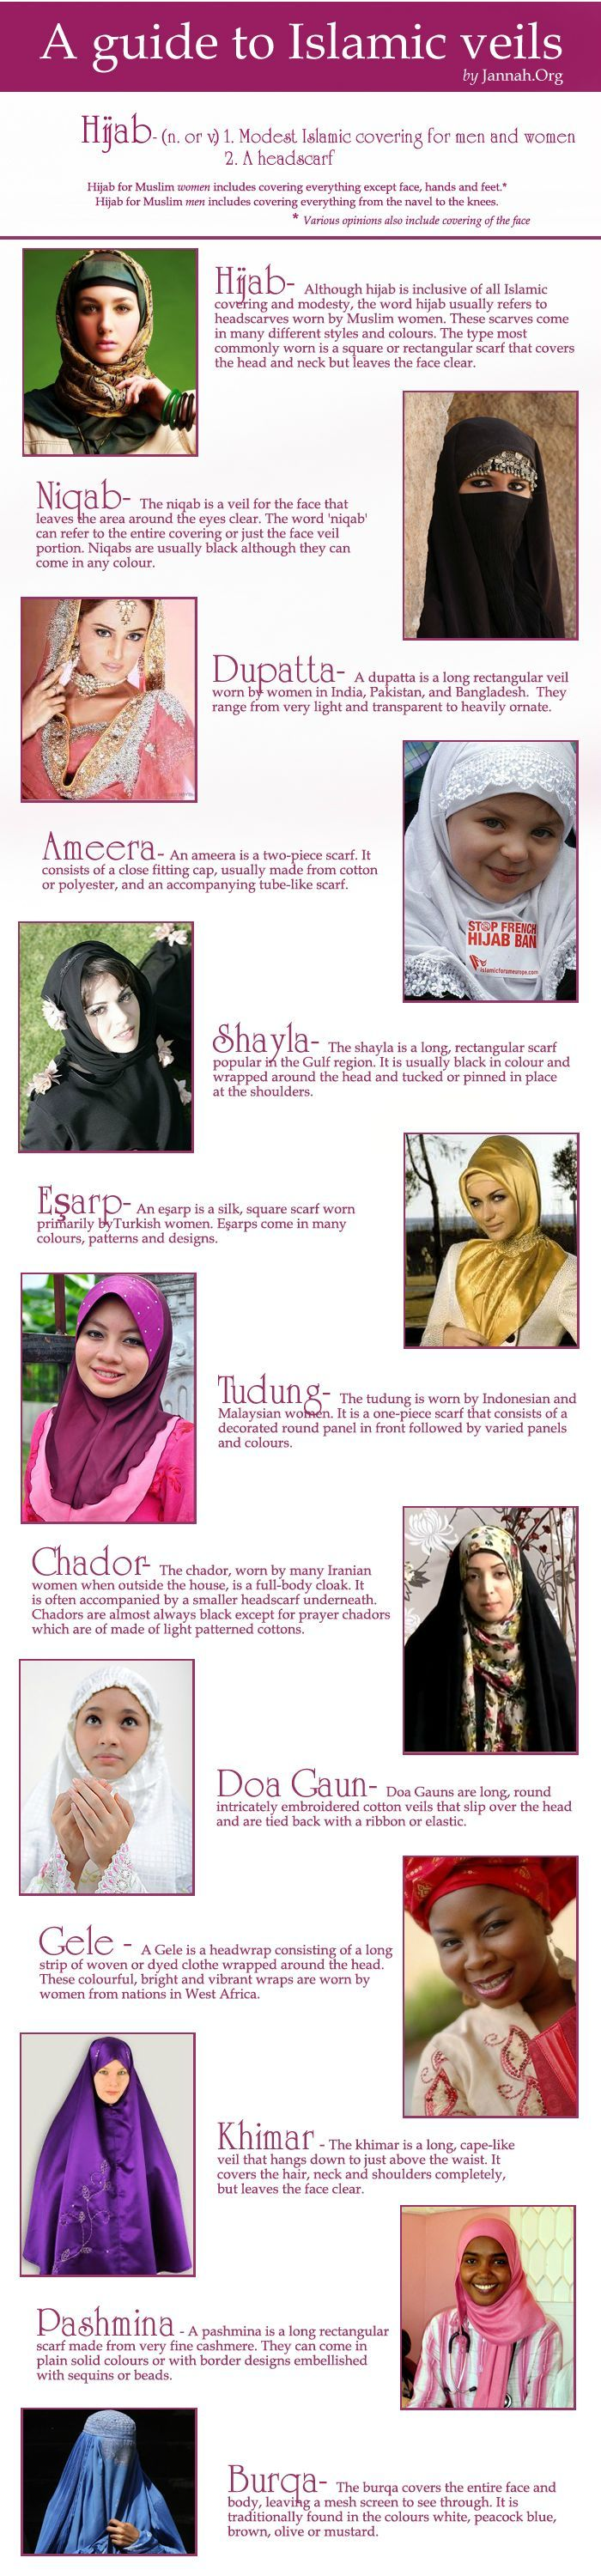 Different veils worn by Muslim women around the world.  Hijab, from my understanding, also has a more deeper meaning than only to refer to the covering of a women's head.  It also refers to a muslim's modesty both of men and women.